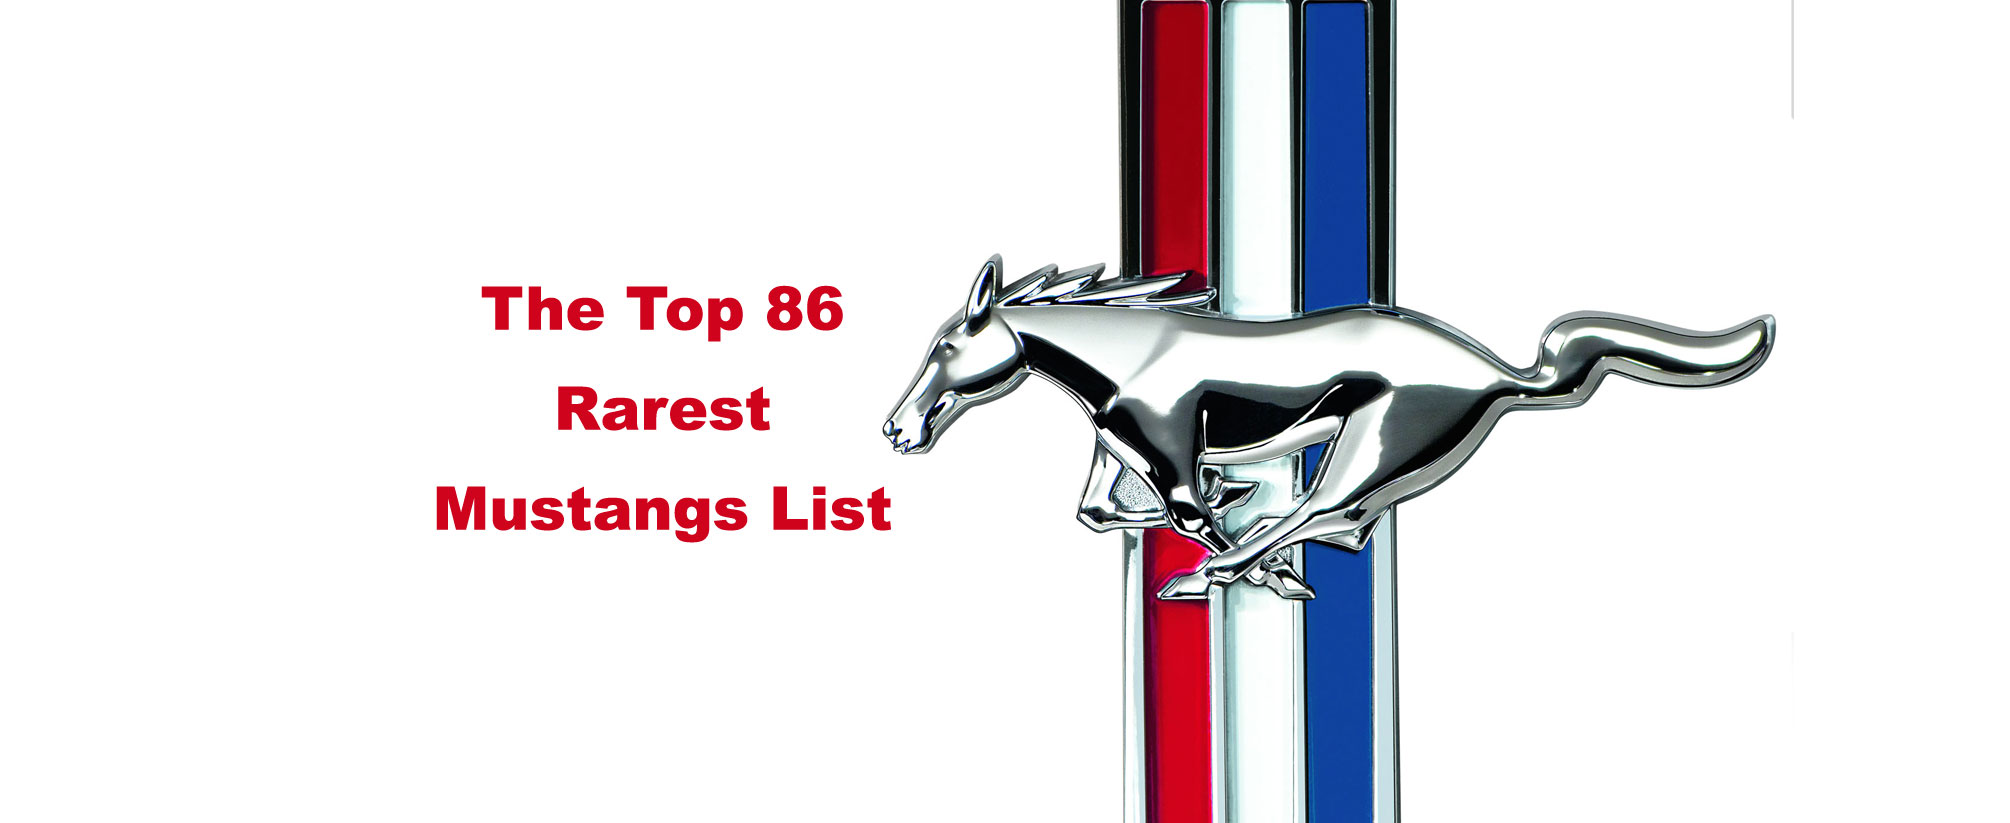 the-top-86-rarest-mustangs-list